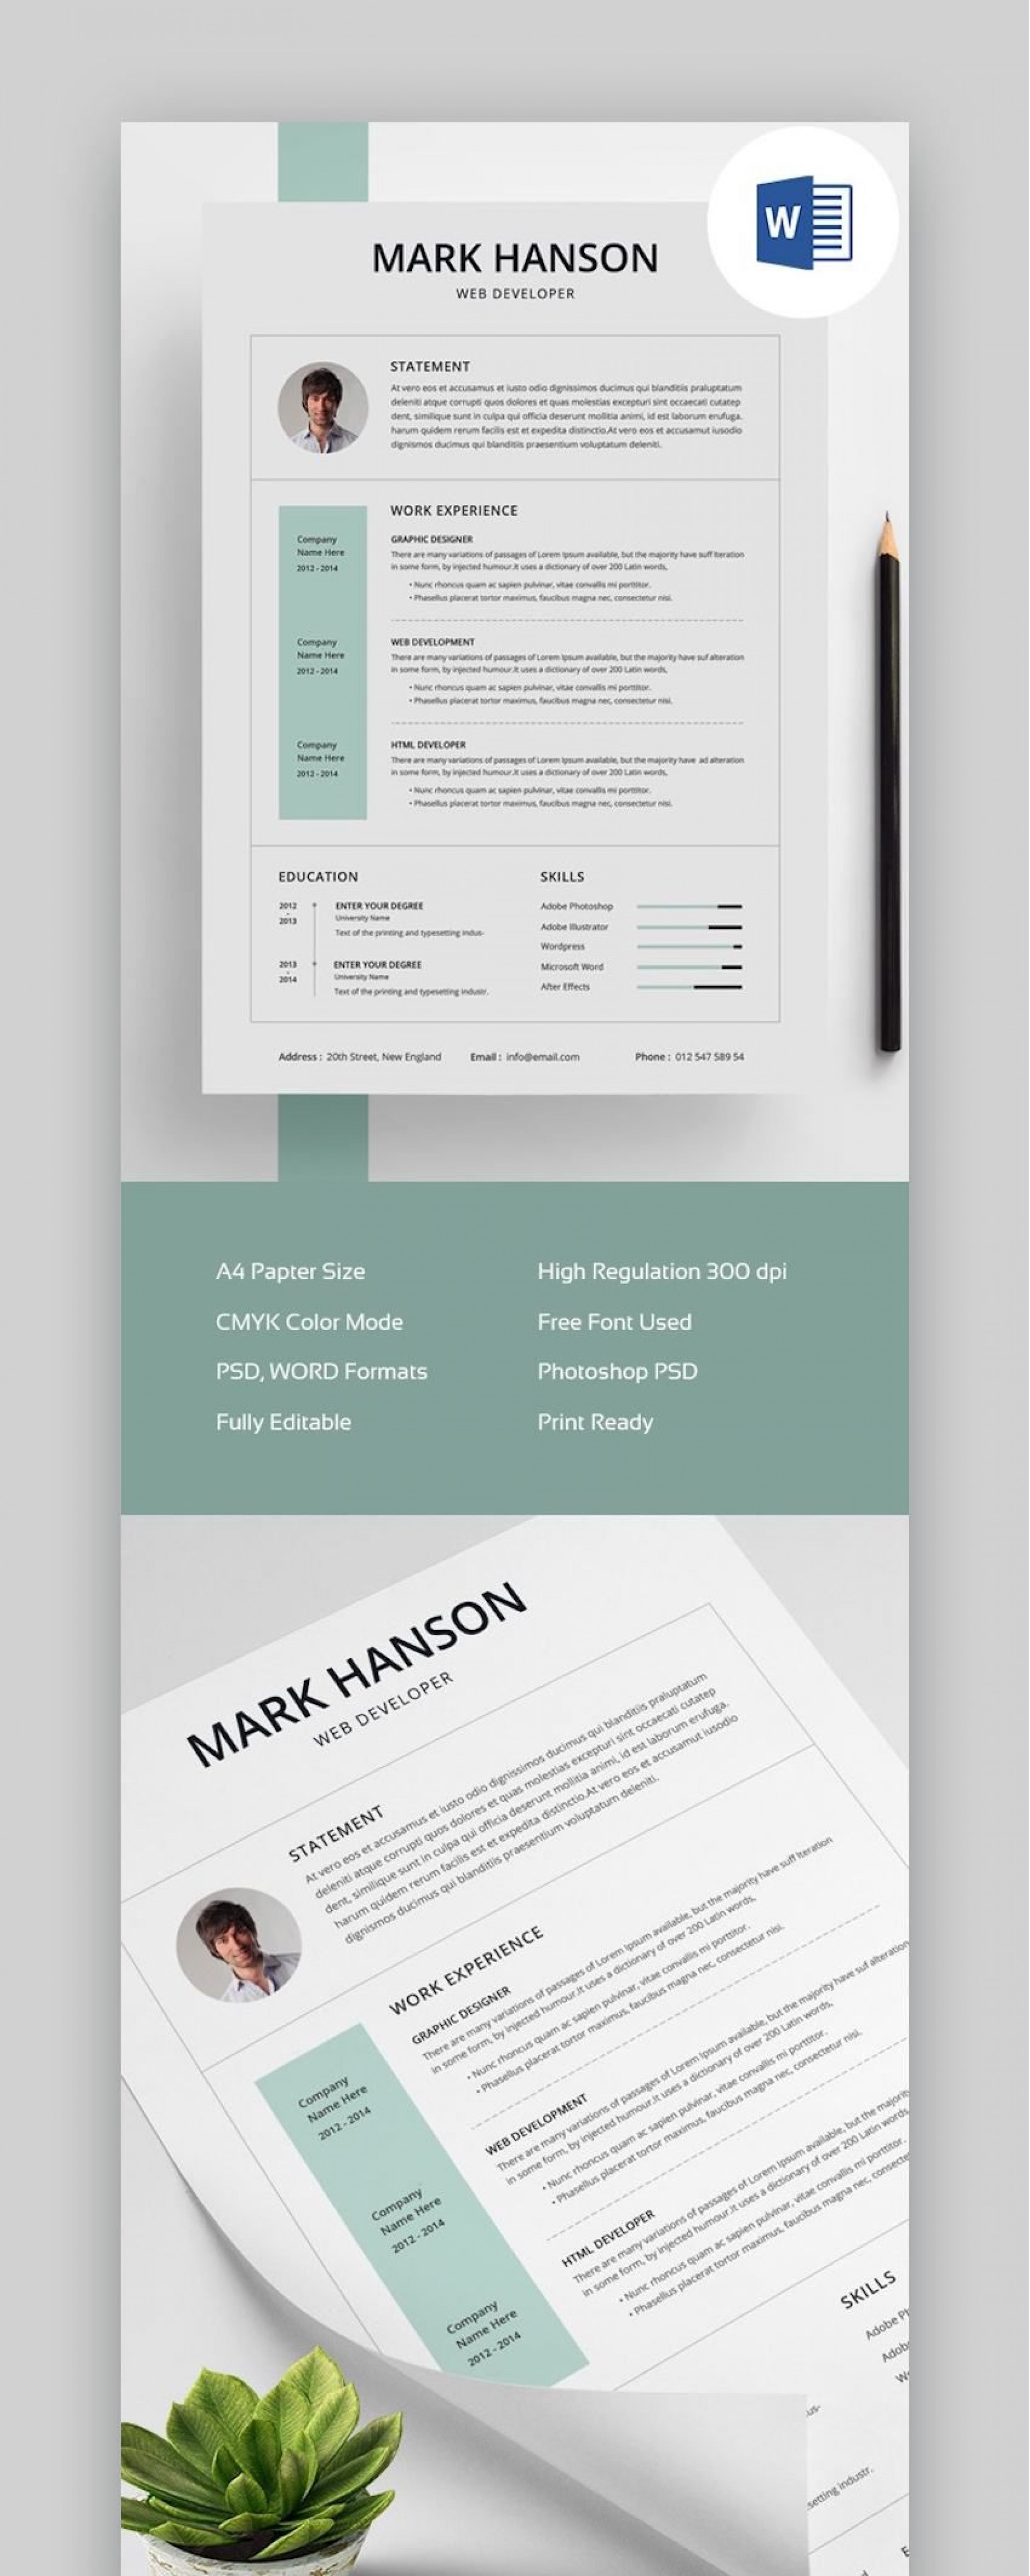 004 Remarkable Psd Cv Template Free Idea  2018 Vector Photo And File Download Architect1920